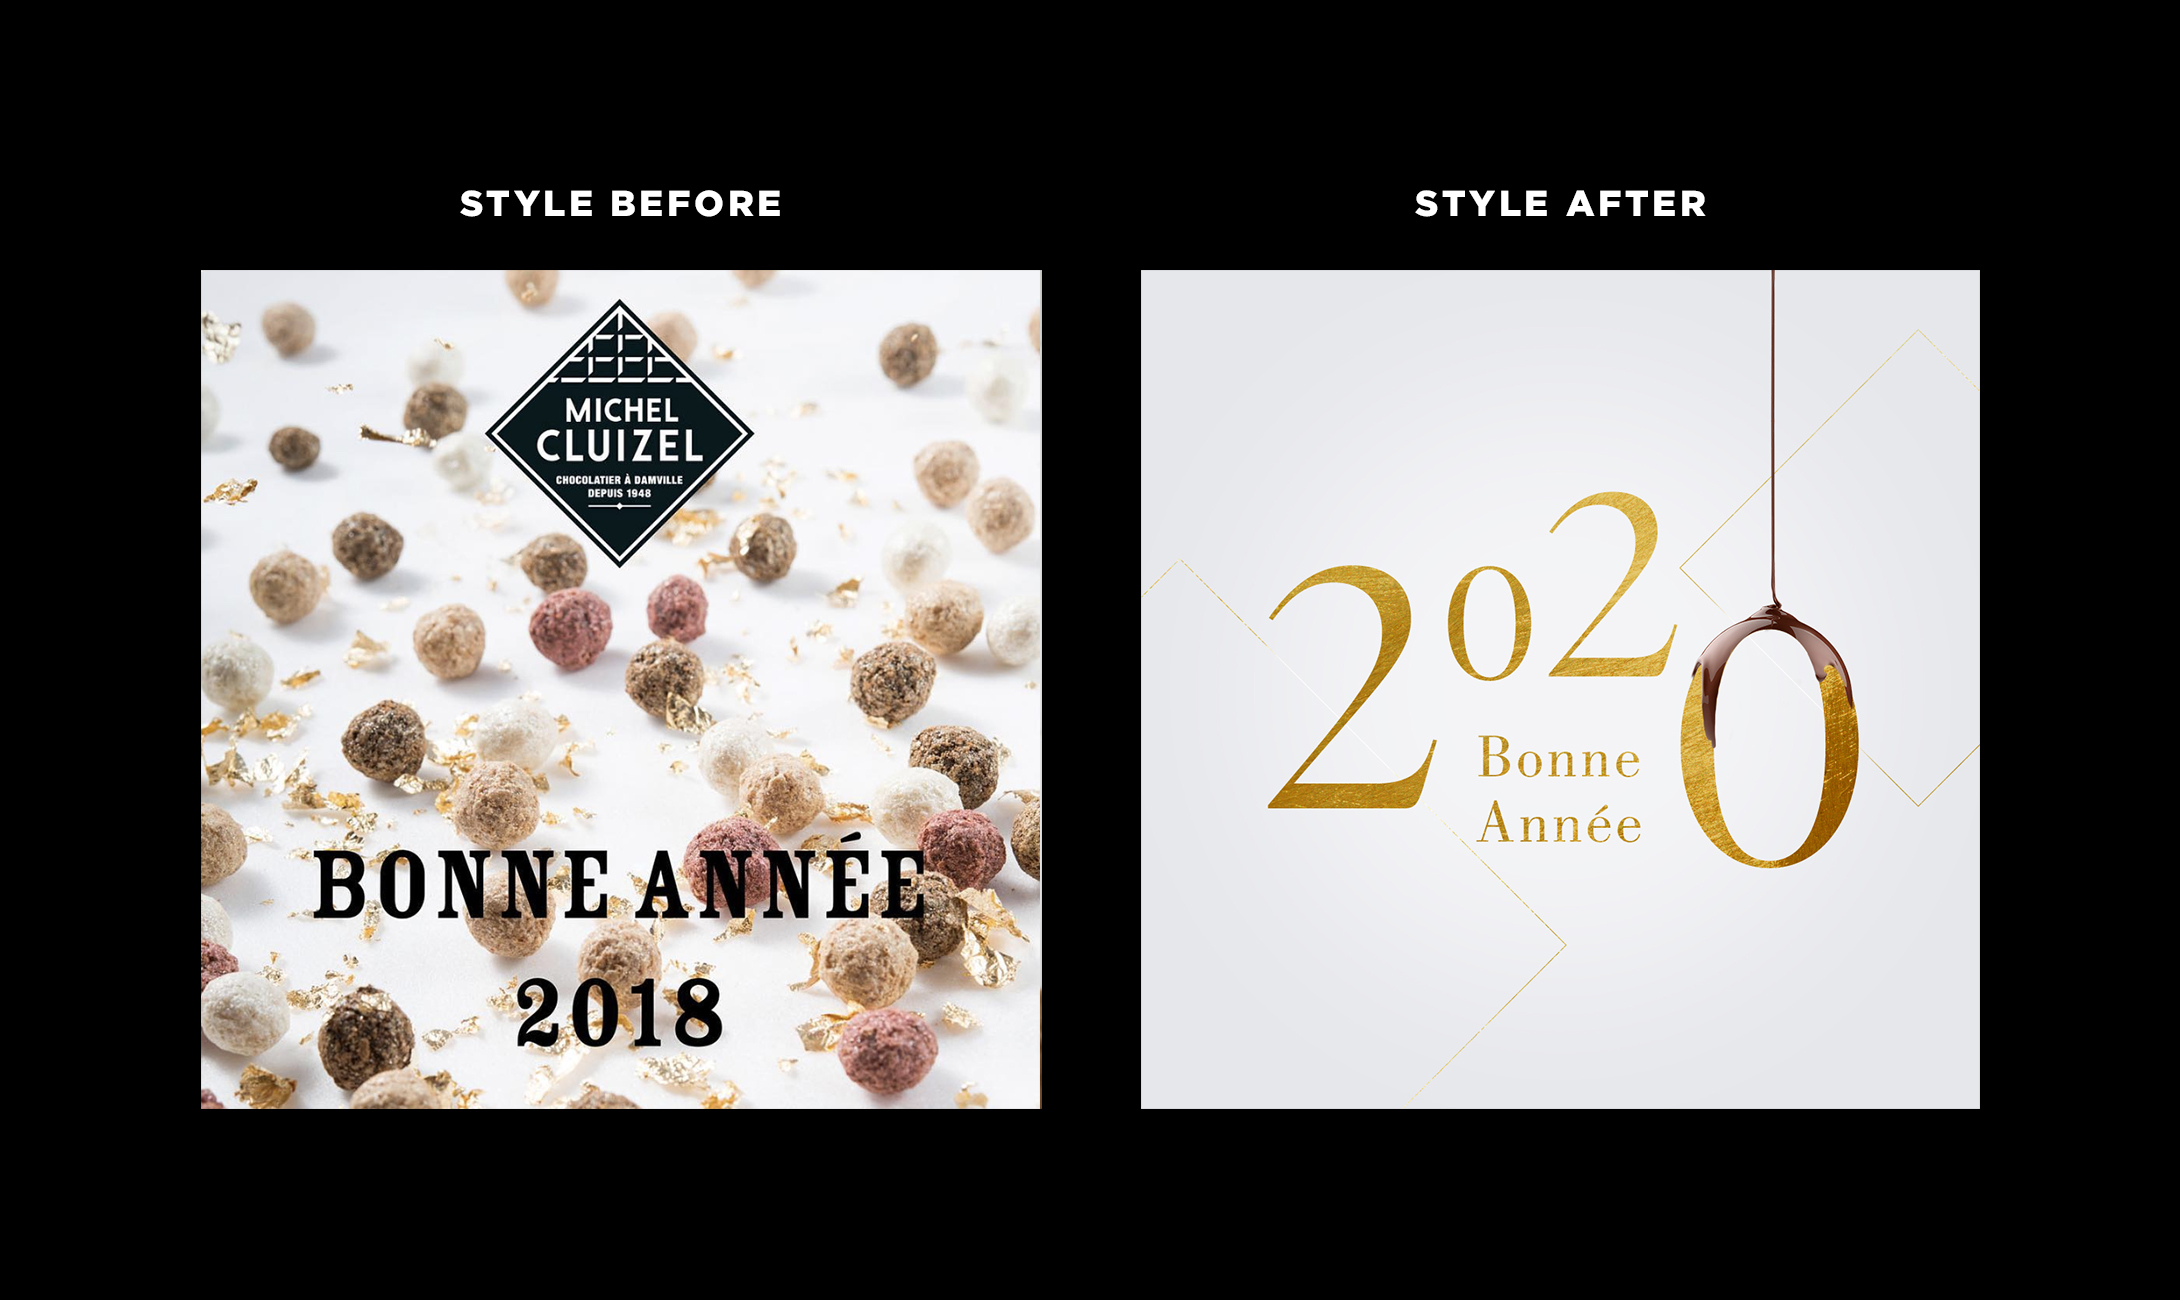 Cluizel_Before-and-after3